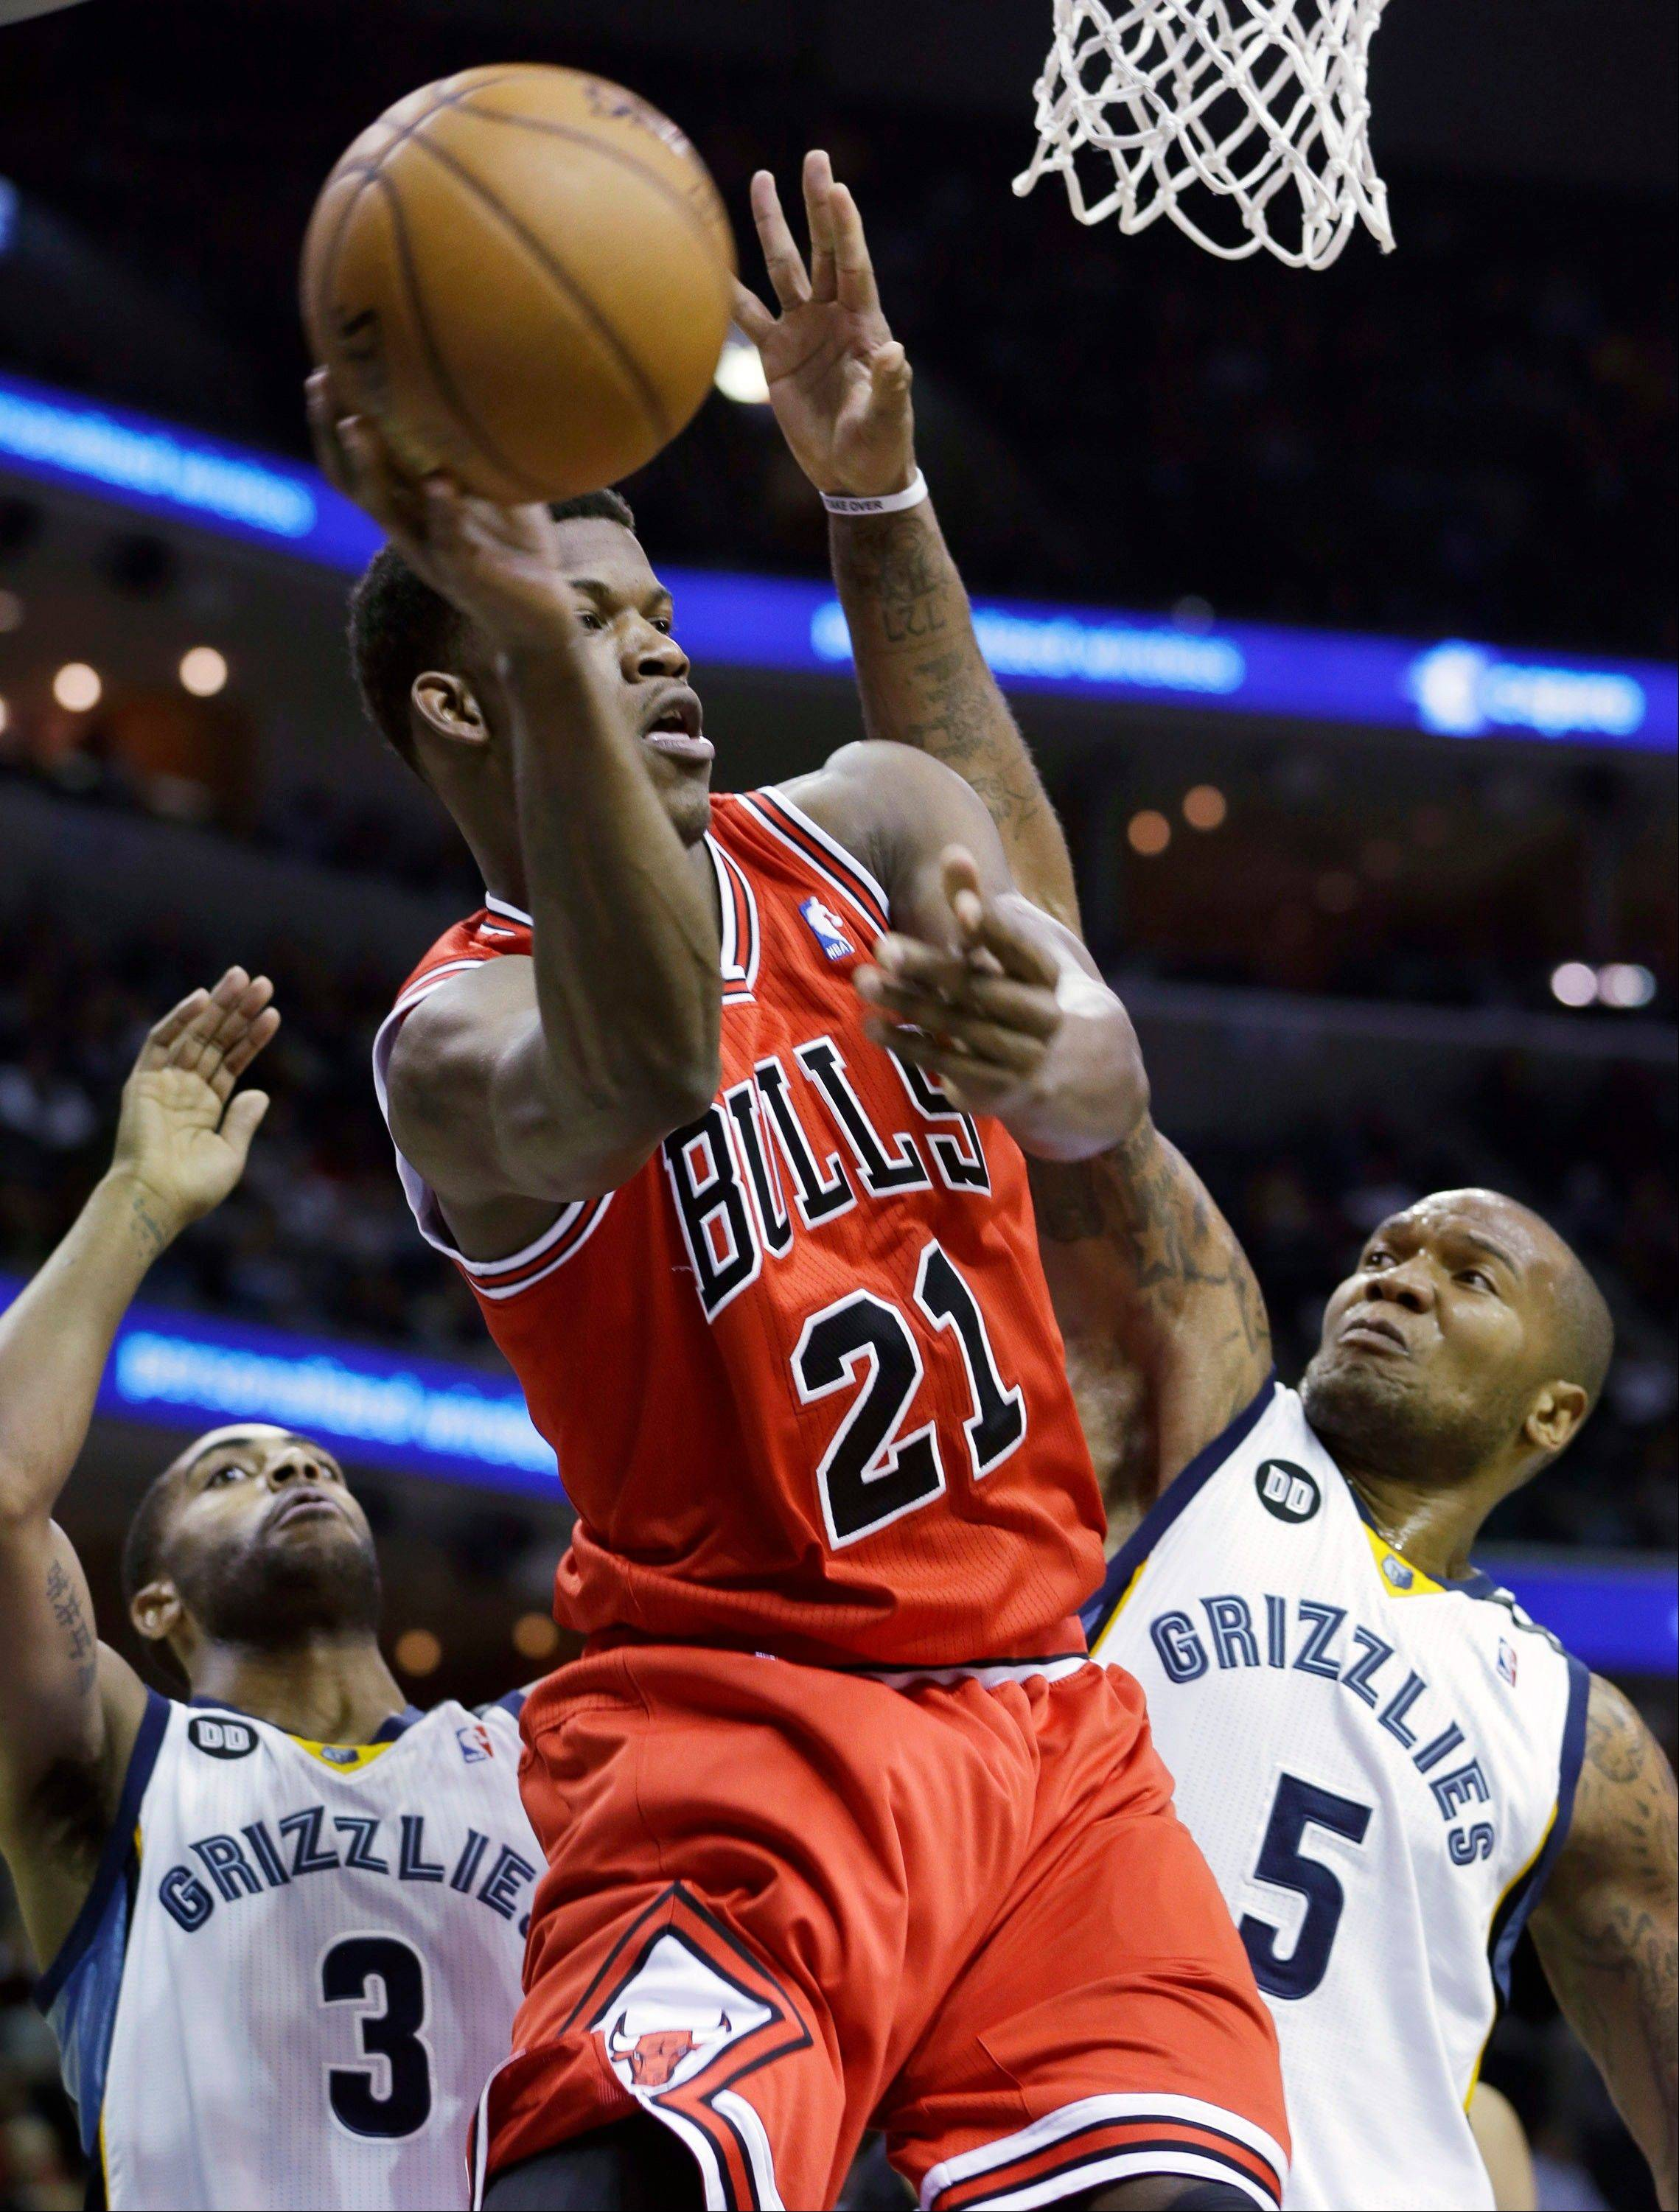 The Bulls' Jimmy Butler grabs an offensive rebound during the first half Monday night in Memphis, Tenn. The Bulls lost to the Grizzlies 80-71.